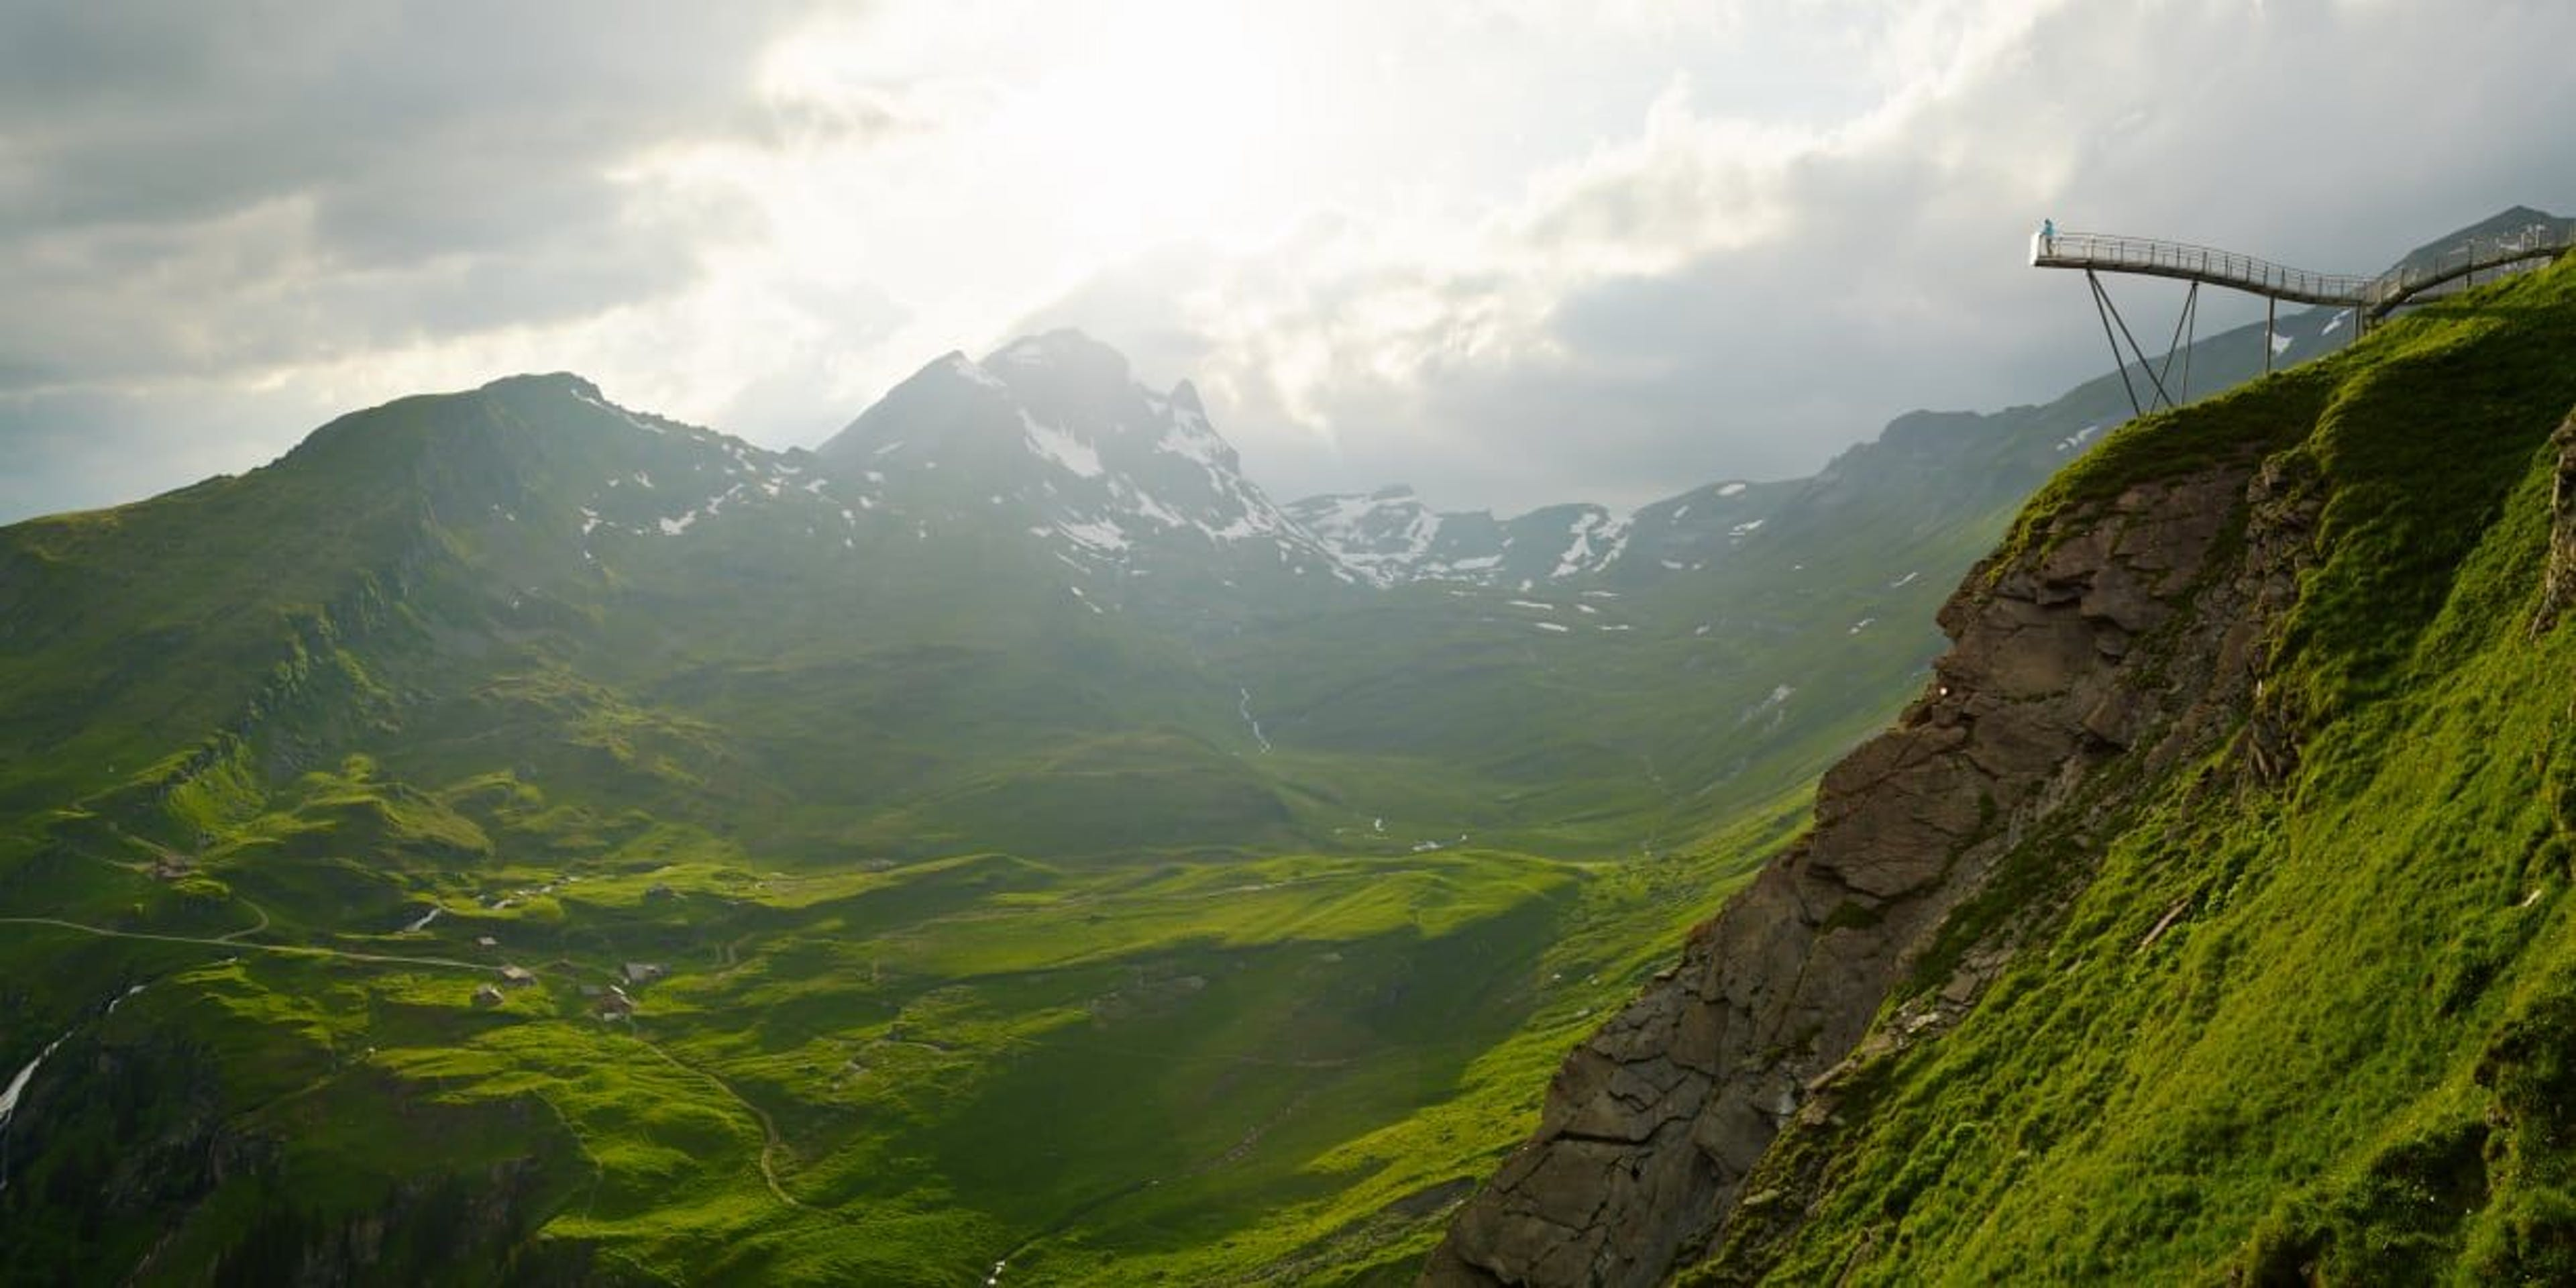 https://media.jungfrau.ch/image/upload/f_auto,fl_lossy,q_auto,c_crop,ar_16:8/c_scale,w_1228/v1479812855/fileadmin/Grindelwald_First_Sommer/Grindelwald-First-Cliff-Walk-Panorama-Alp-Bachlaeger.jpg